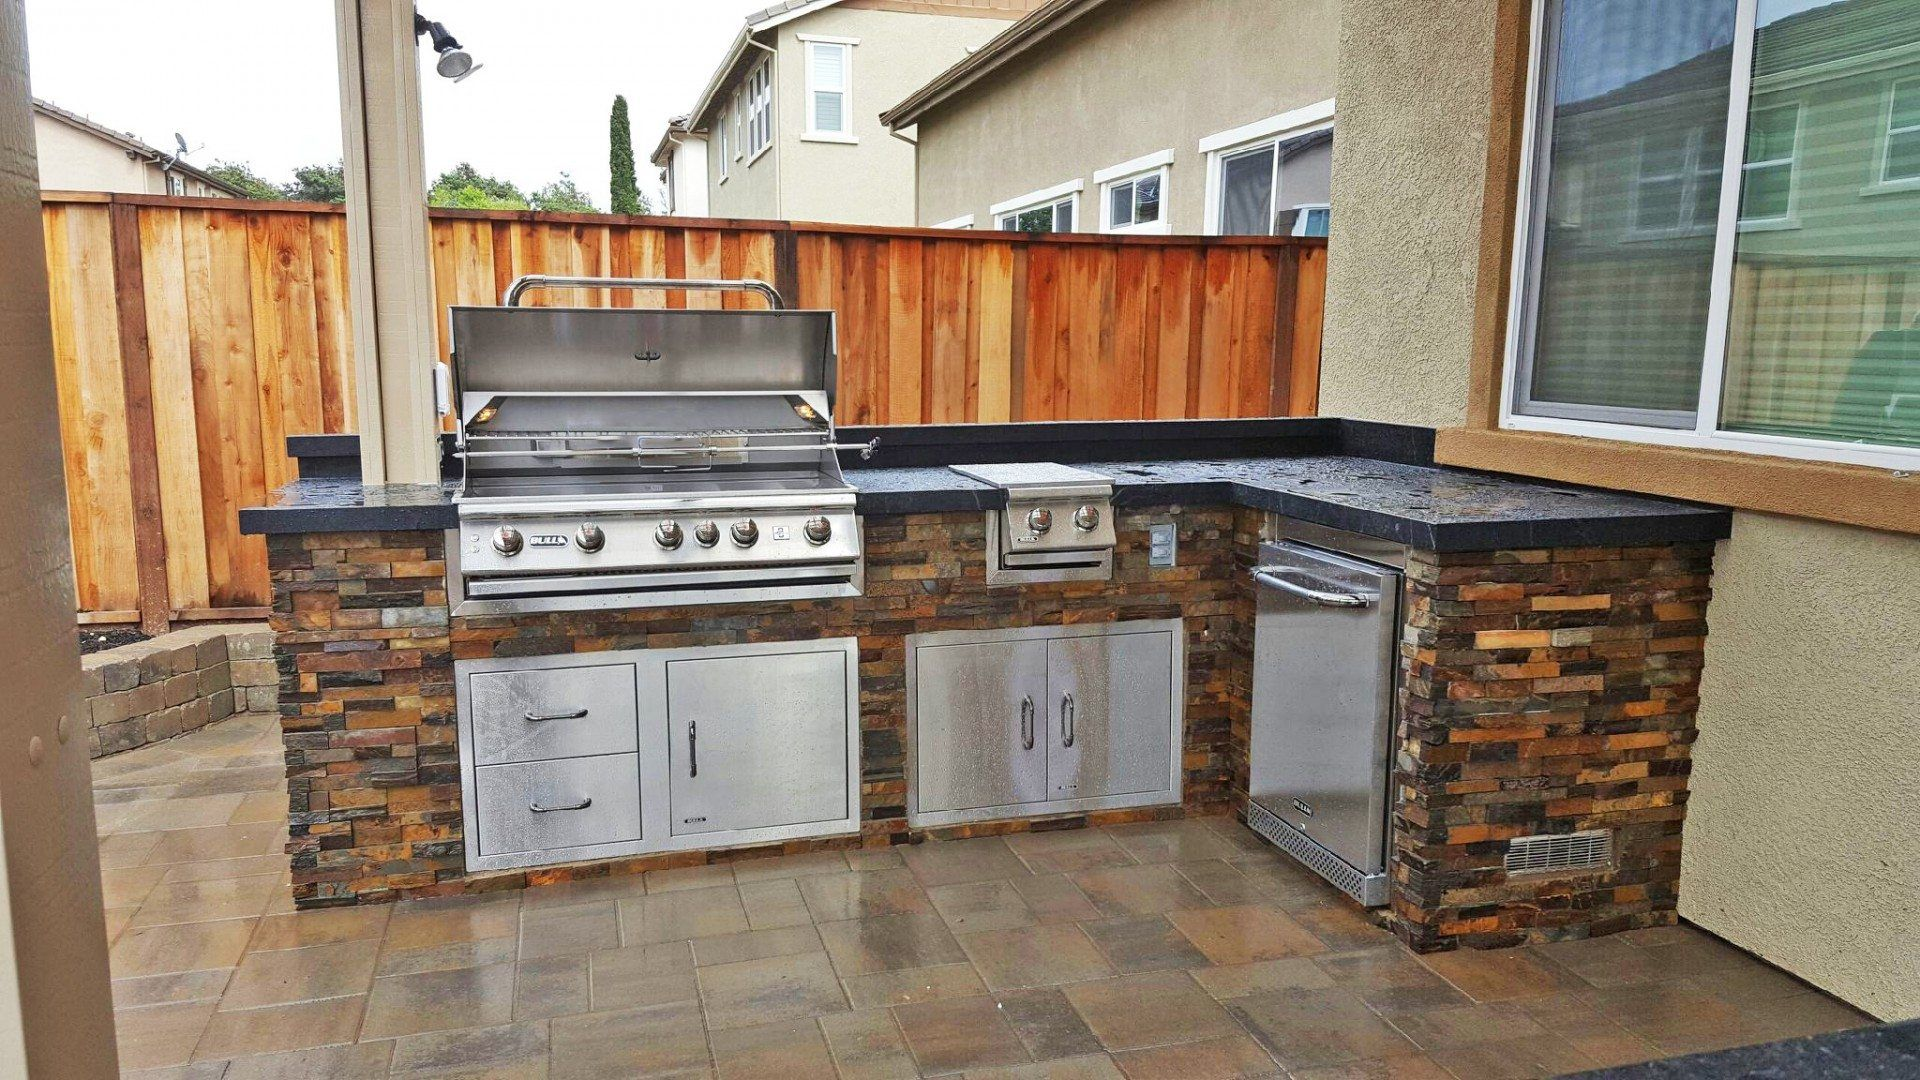 outdoor kitchen island without grill in 2020 outdoor kitchen island outdoor kitchen outdoor on outdoor kitchen island id=55466